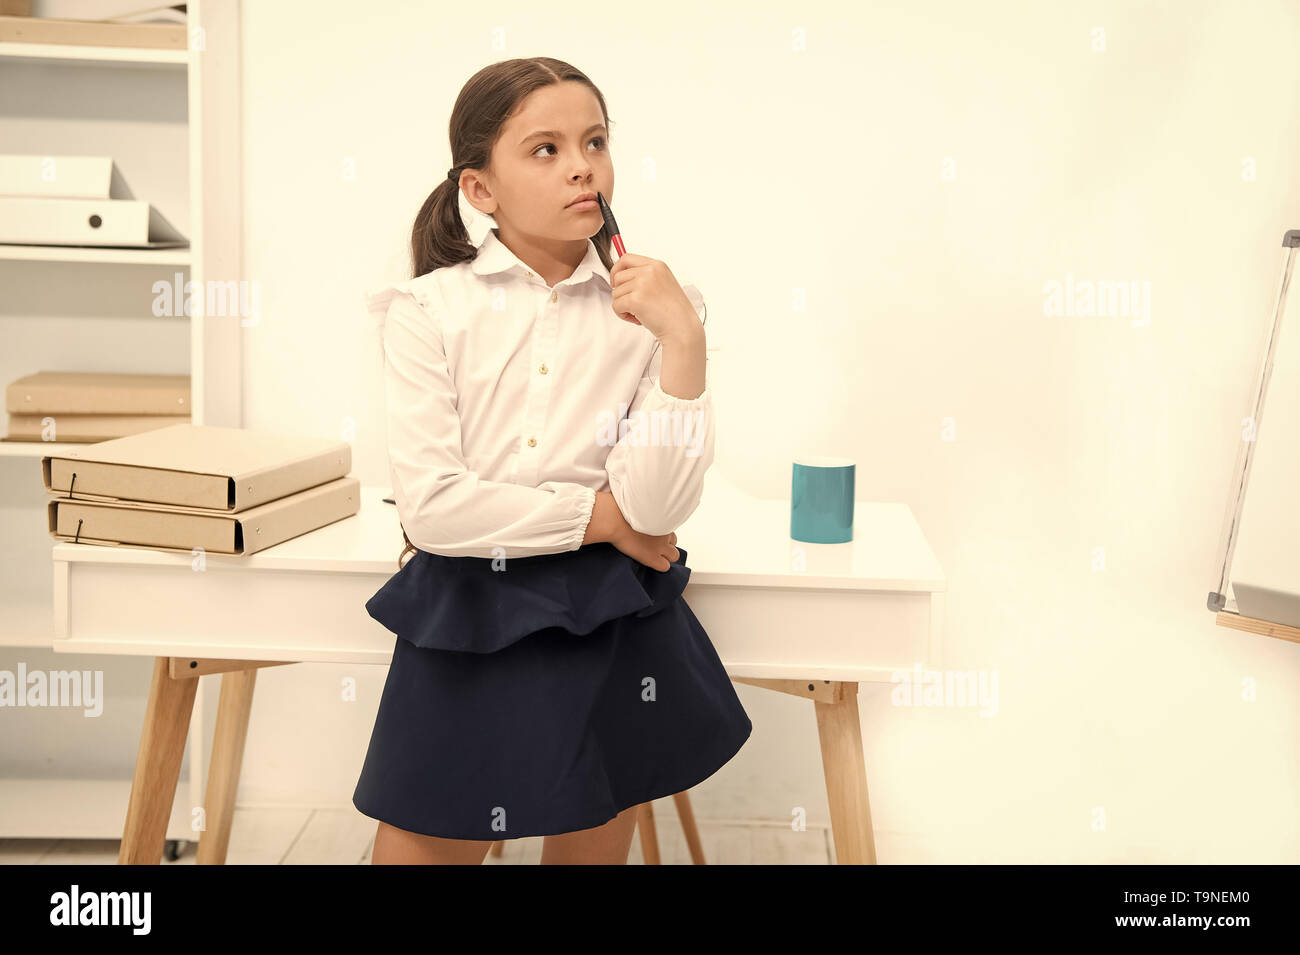 Focused on remembering. Child girl wears school uniform standing with remembering face expression. Schoolgirl smart child looks thoughtful white inter - Stock Image